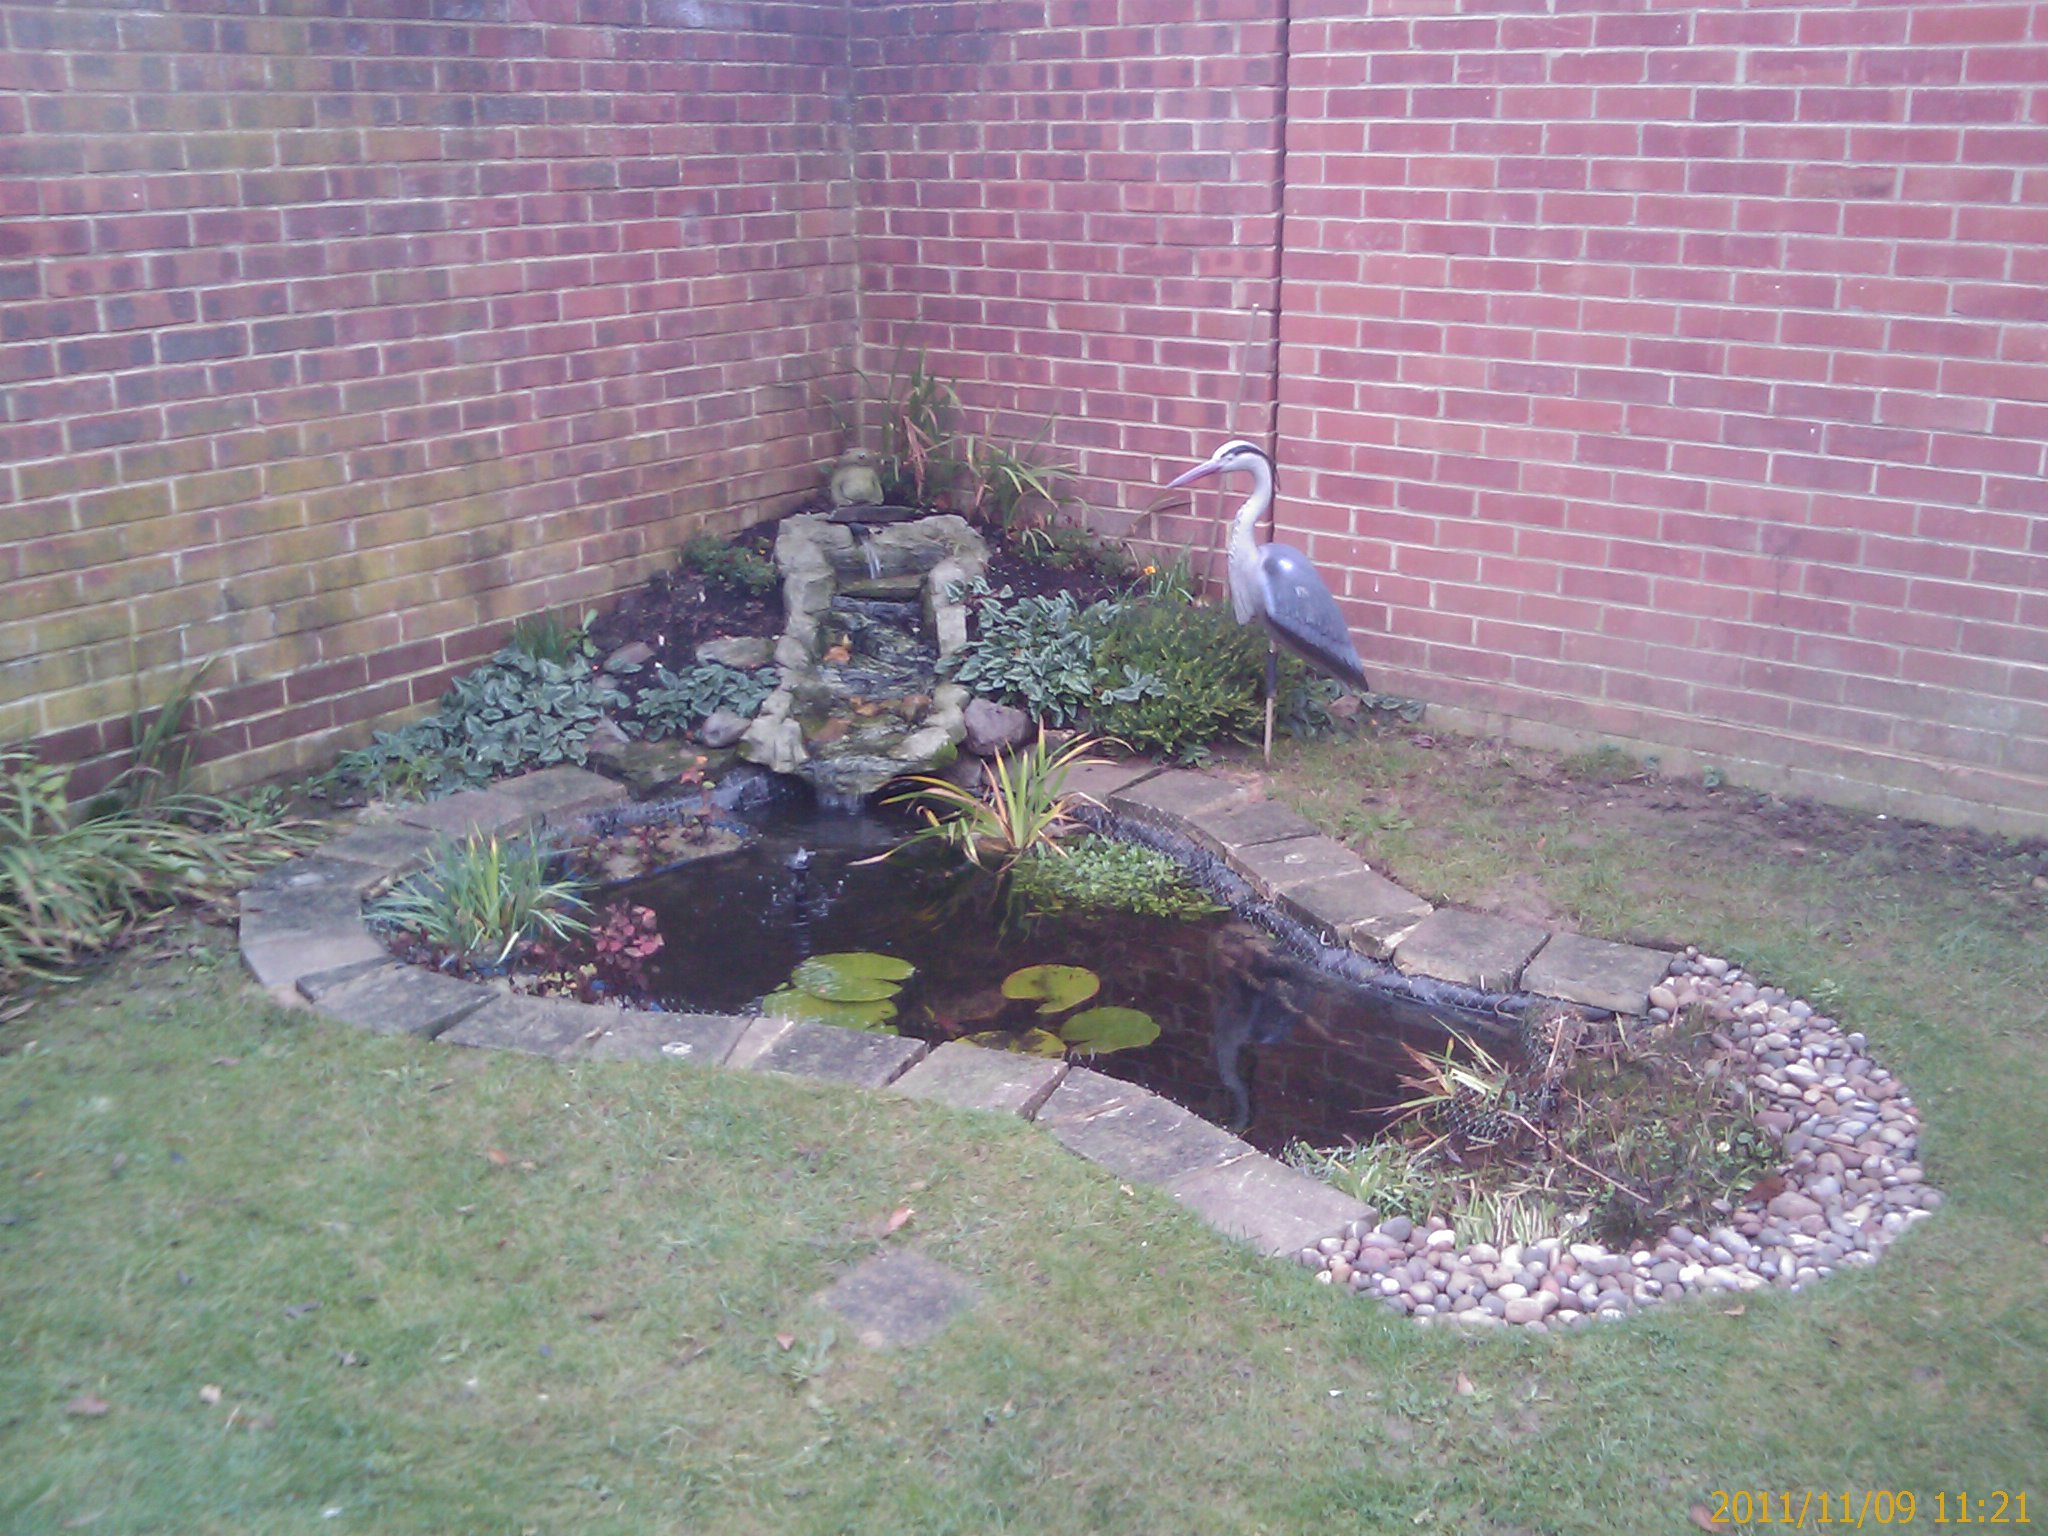 Re lining the fishpond keith 39 s blogs for Places to fish around me